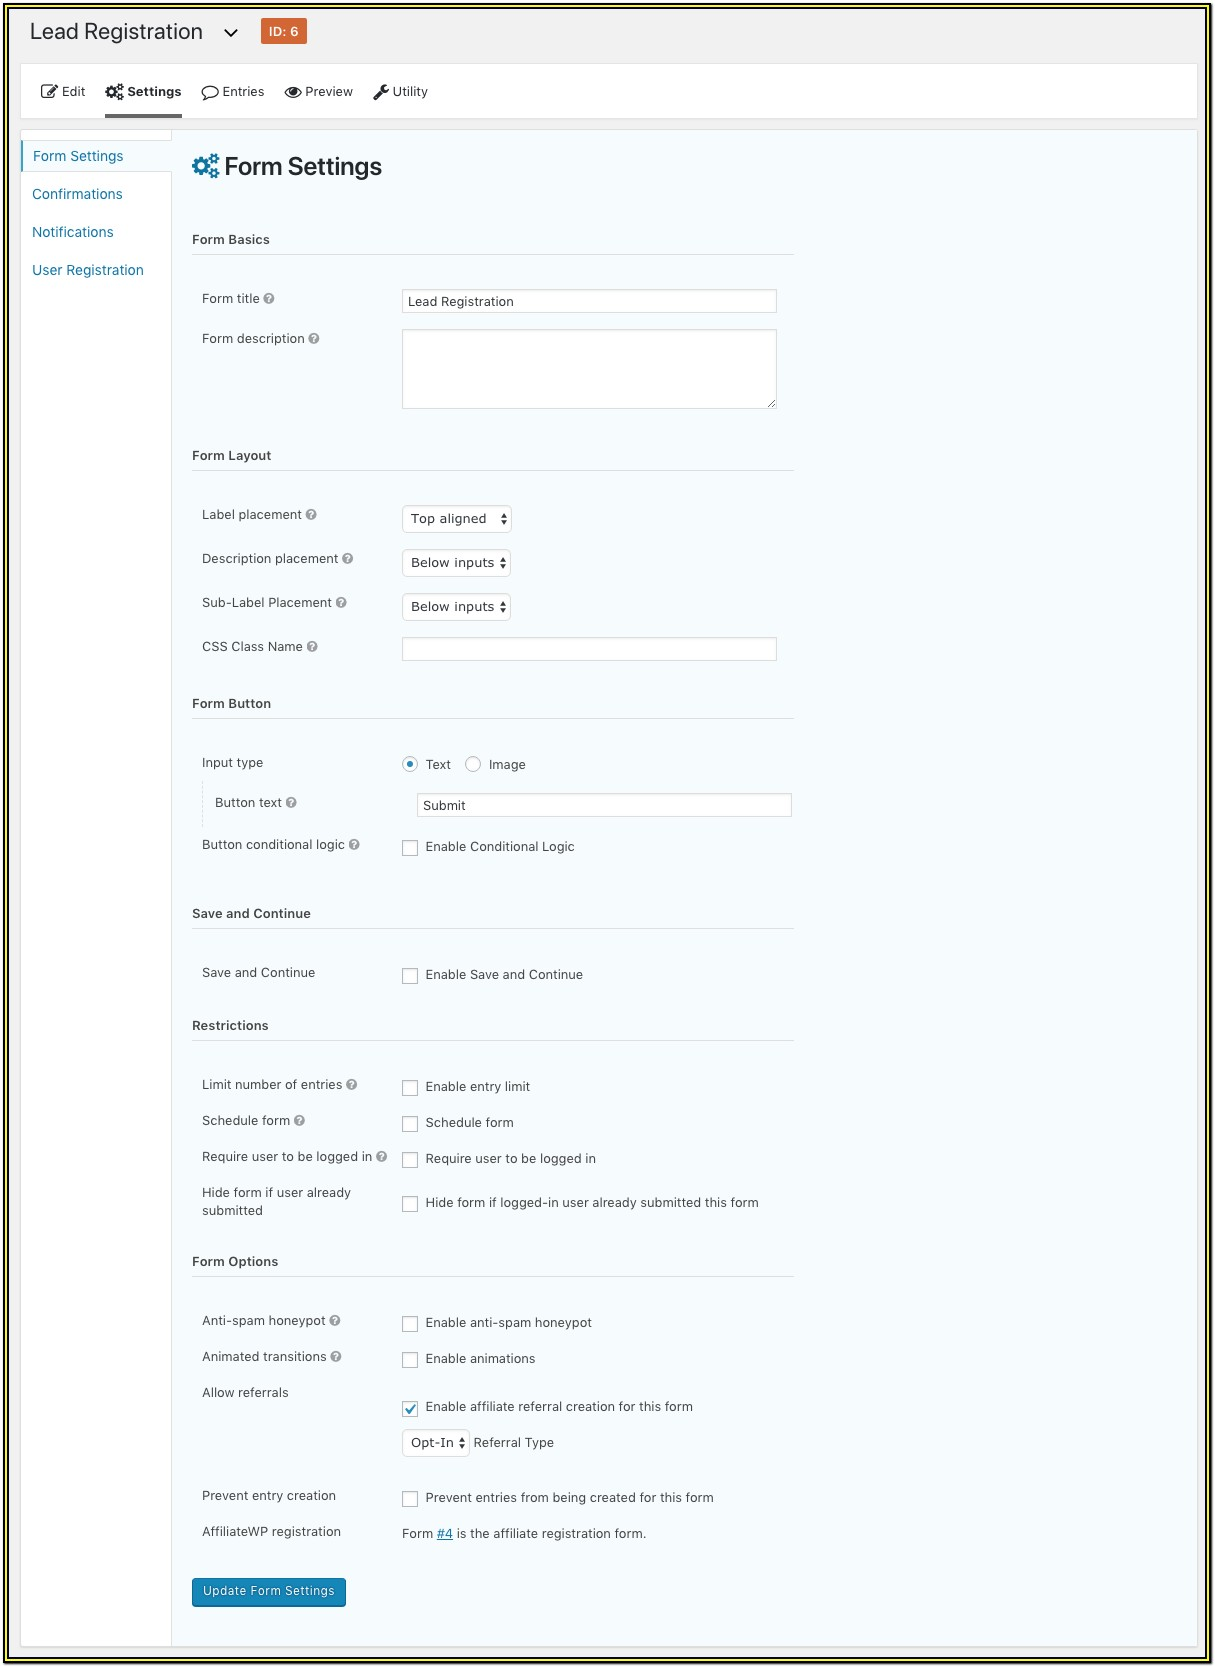 Registration Form With Paypal Integration